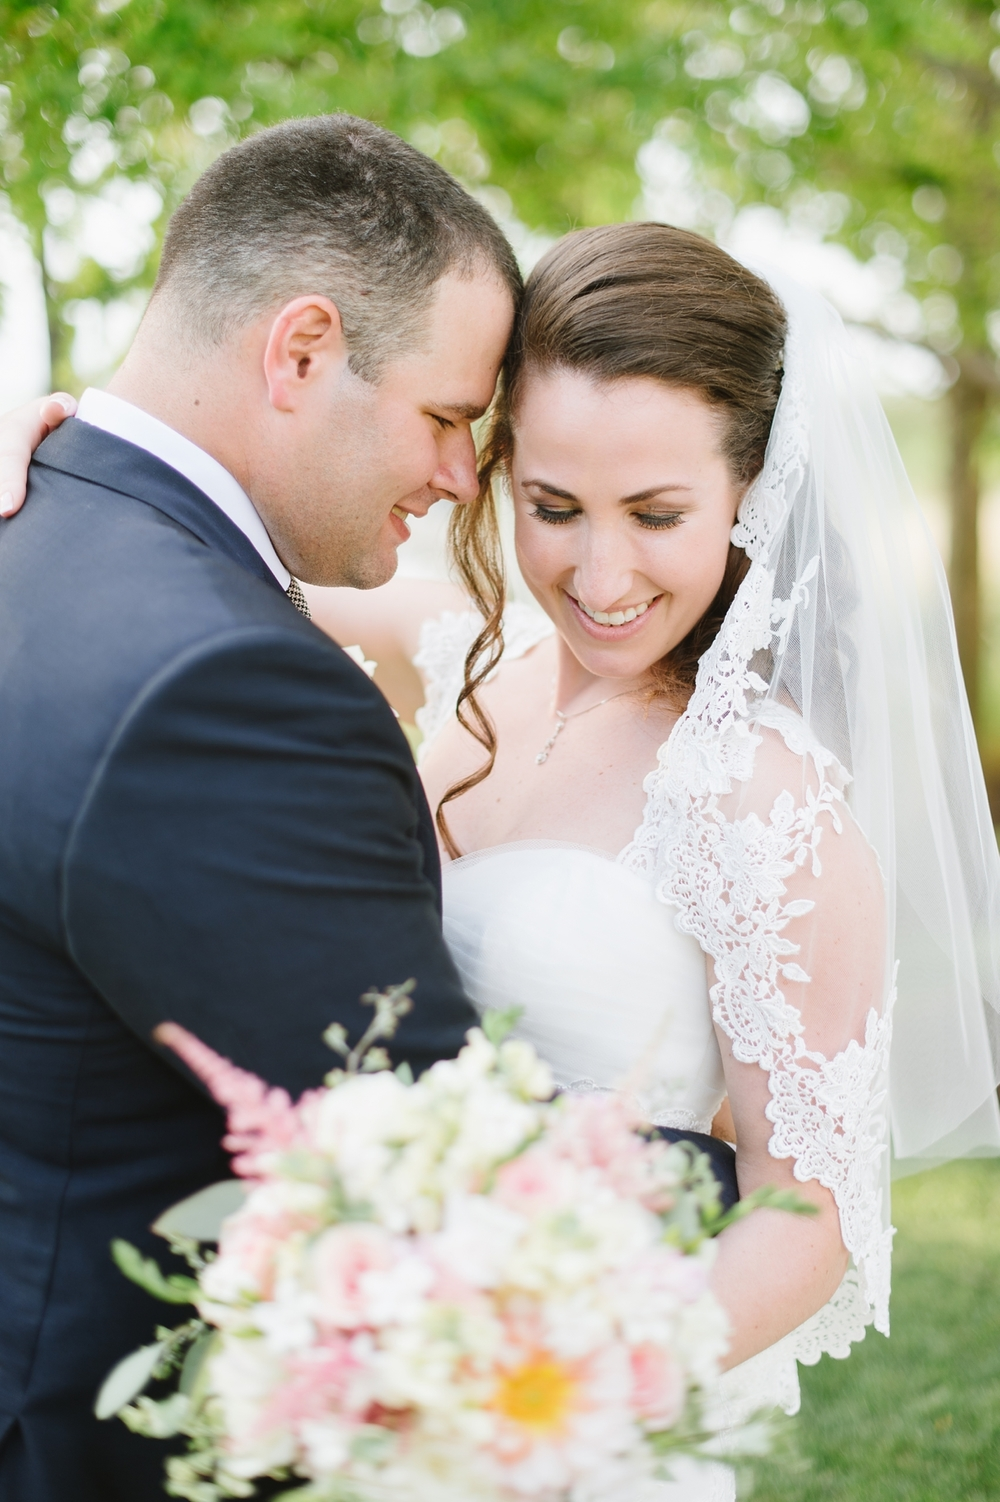 Diane + Bill on August 9, 2015 ♥ Natalie Frank Photography at Chesapeake Bay Beach Club (Stevensville, MD)